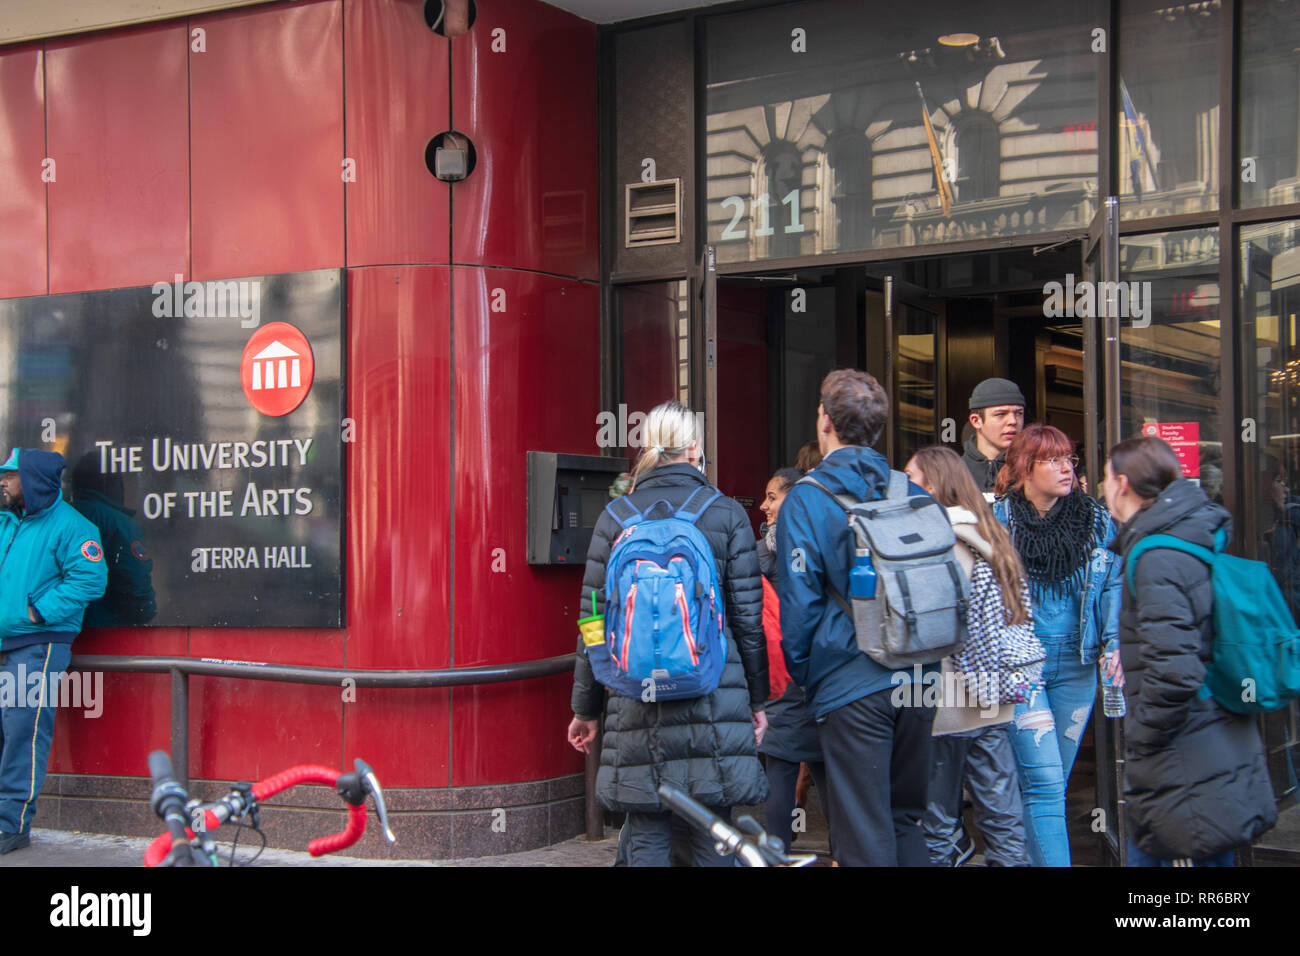 Philadelphia, Pennsylvania - February 5, 2019: Students are seen entering and leaving via the front door of The University of the Arts on Broad Street - Stock Image